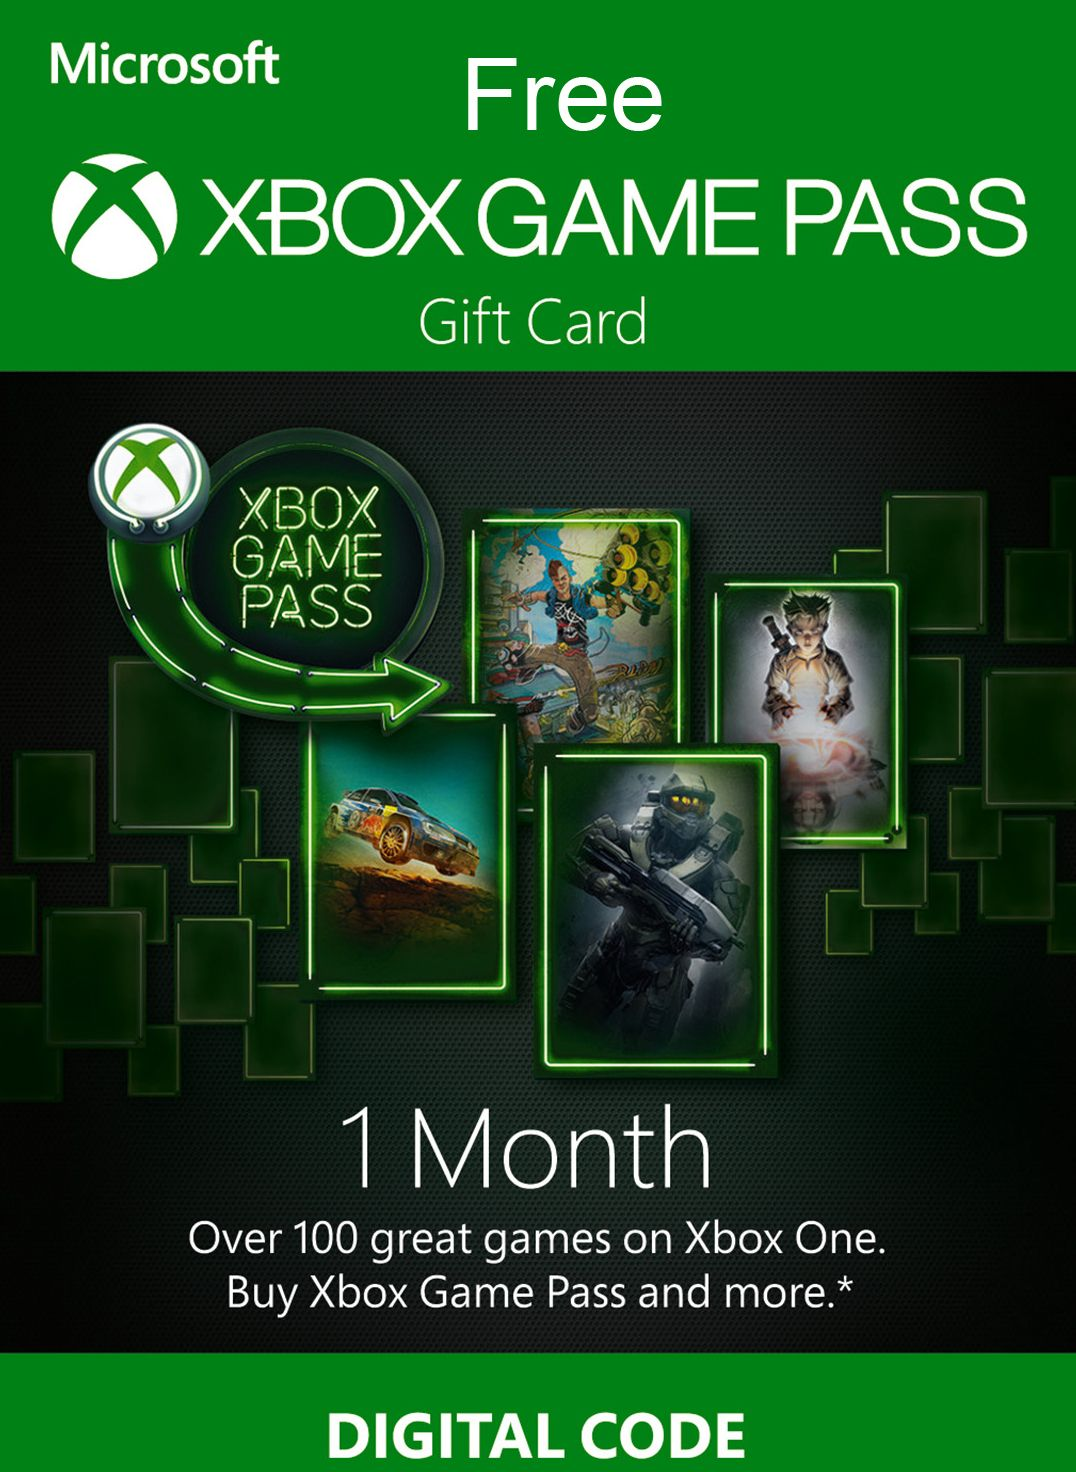 Free Xbox gift card code. Play free games one month or